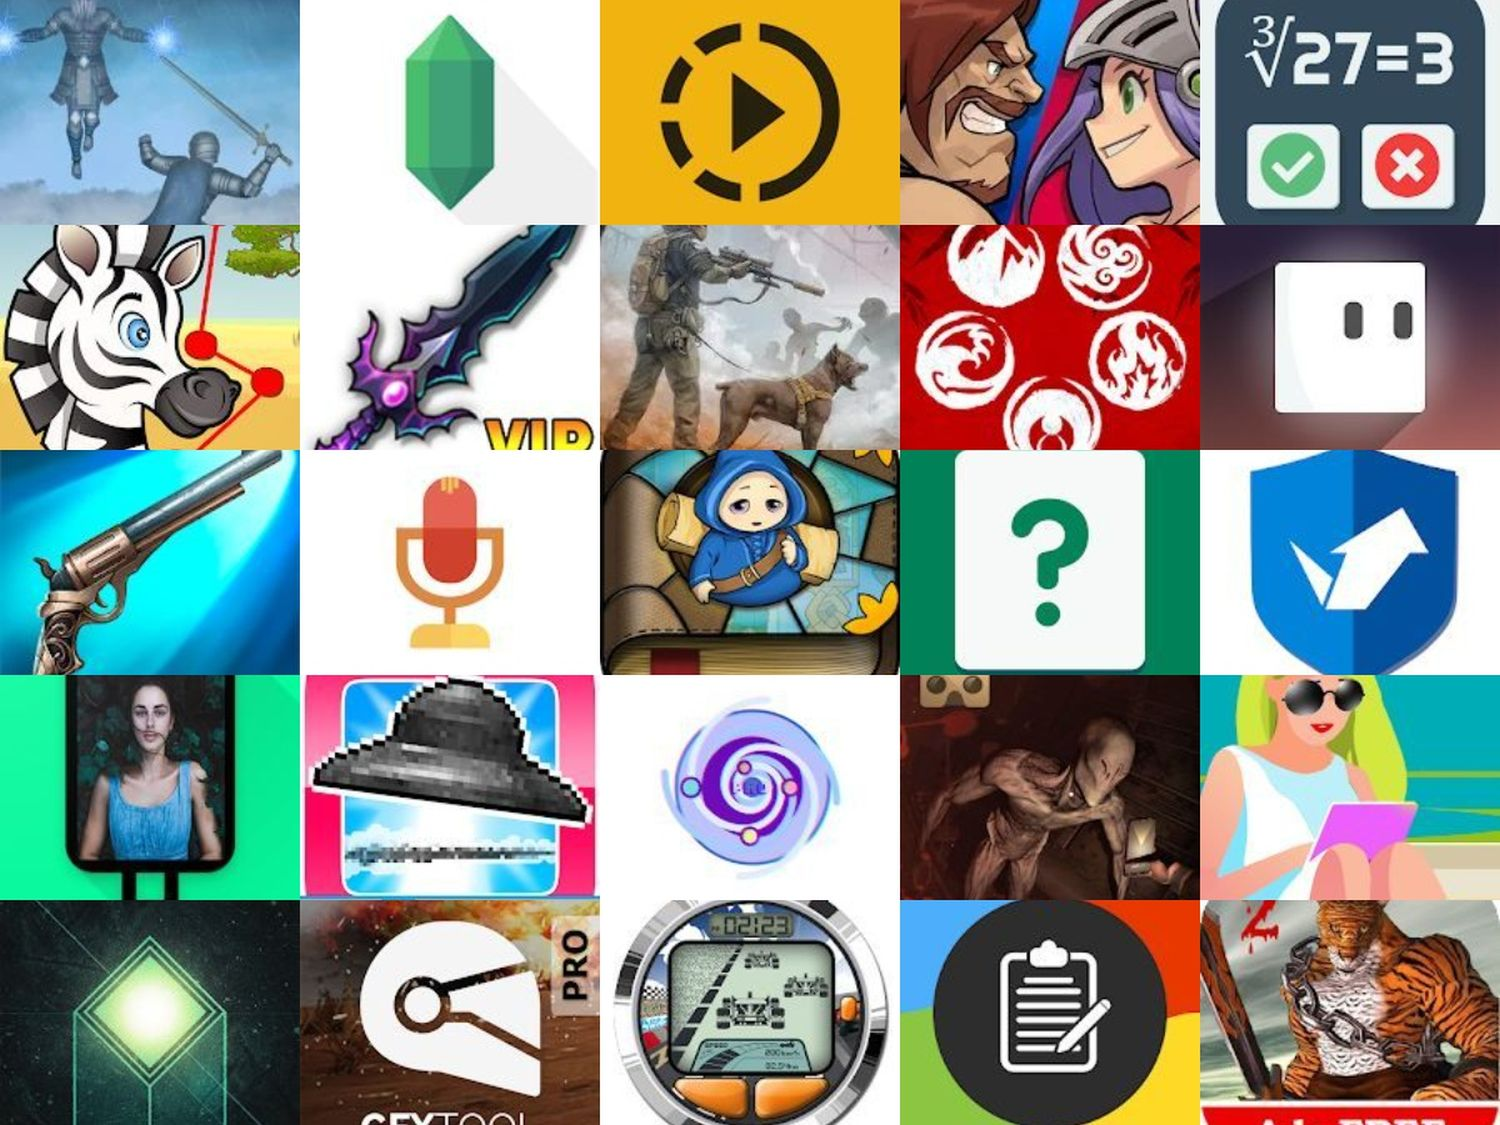 apps 08.08.2021